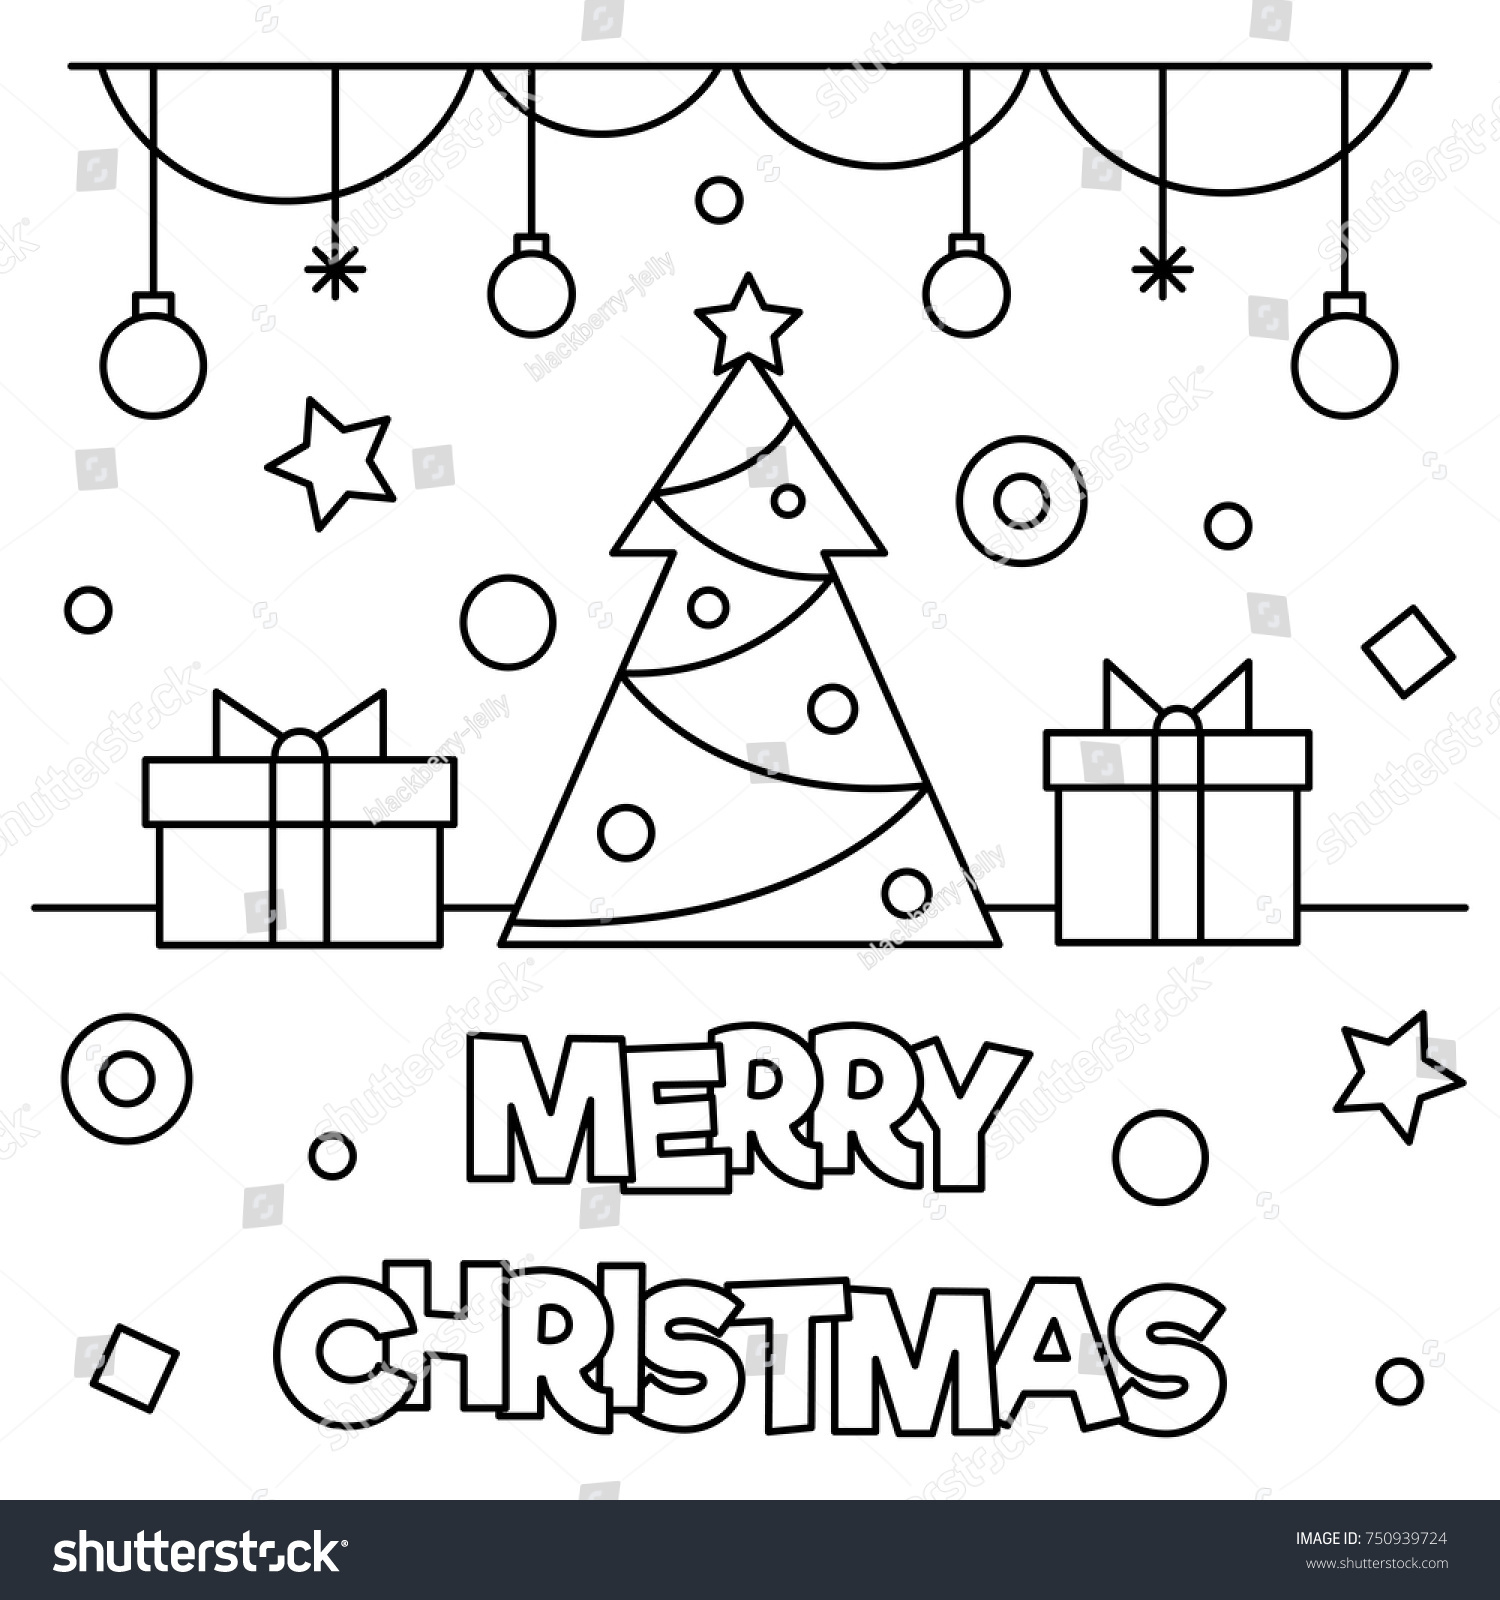 merry christmas coloring page black and white vector illustration - Merry Christmas Coloring